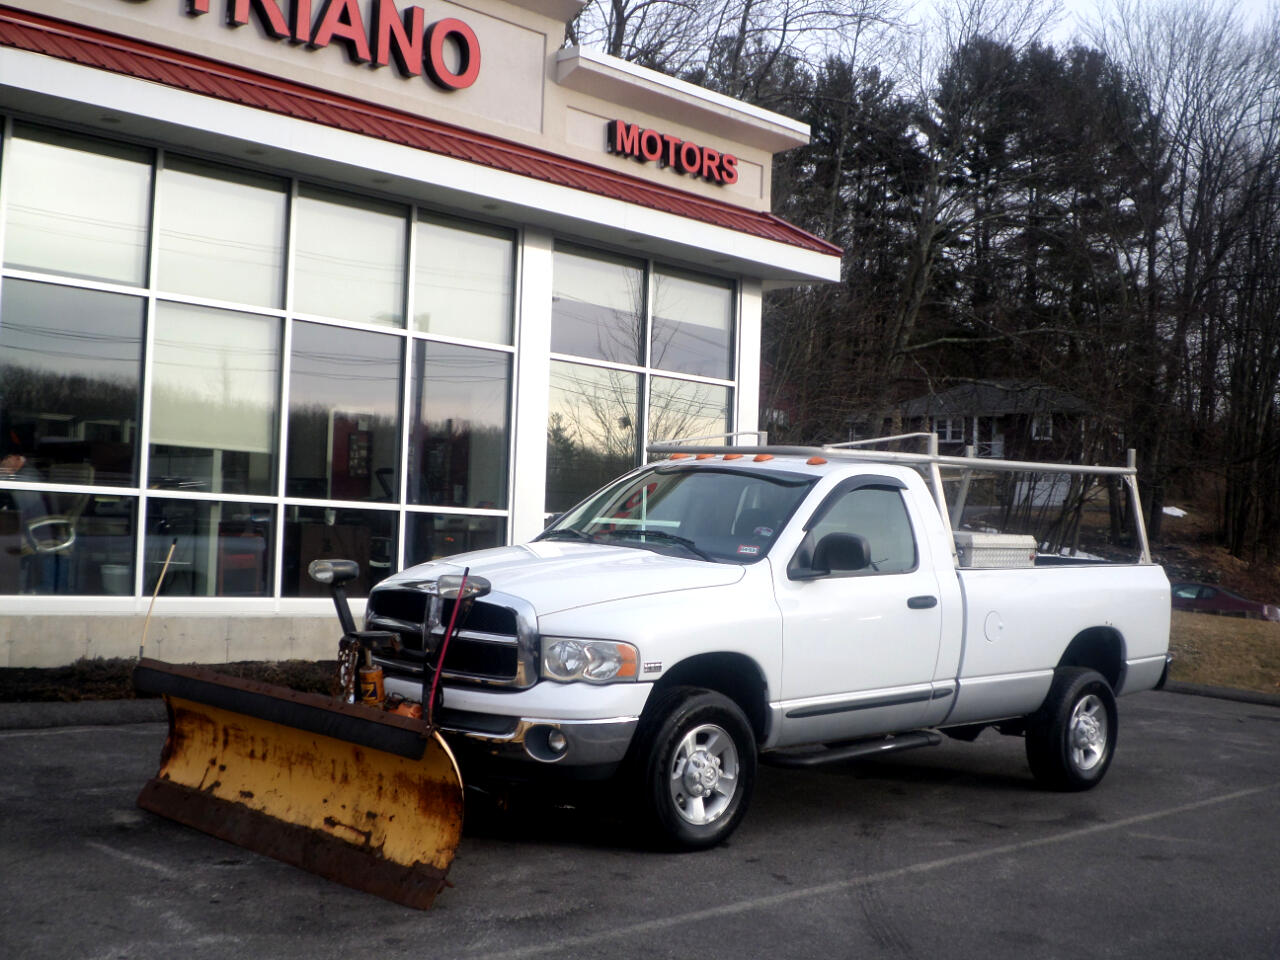 2003 Dodge Ram 2500 REGULAR CAB 8FT BED WITH 8FT PLOW